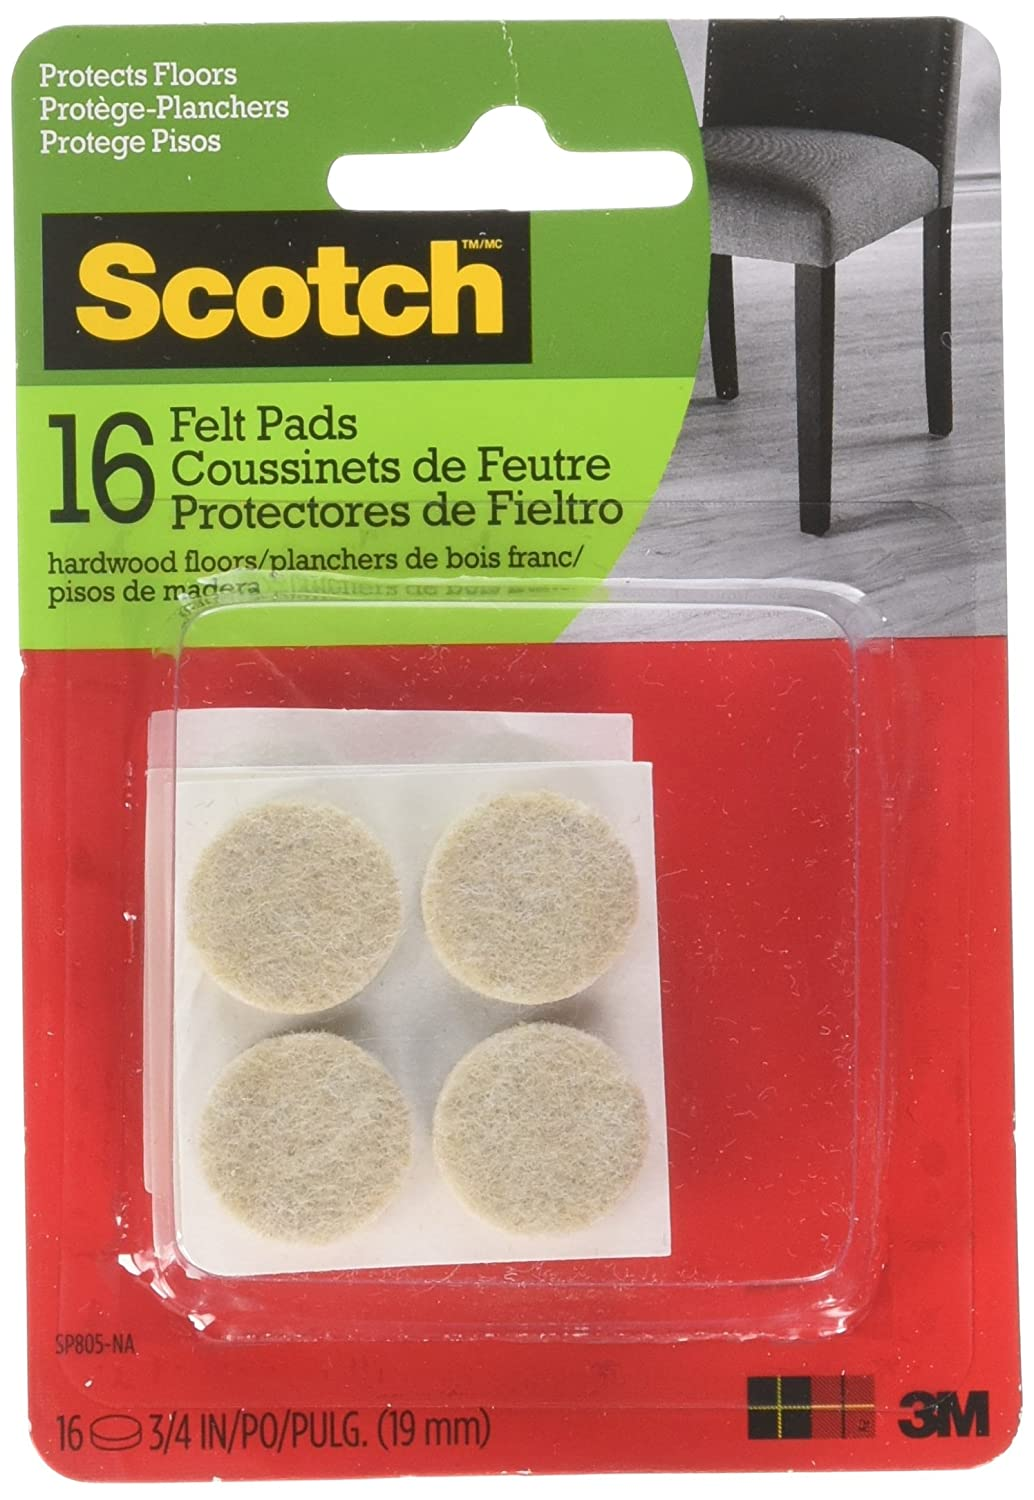 3M Company SP805-Nascotch Felt Pads3M Company SP805-NA Provides Protection from Scratches